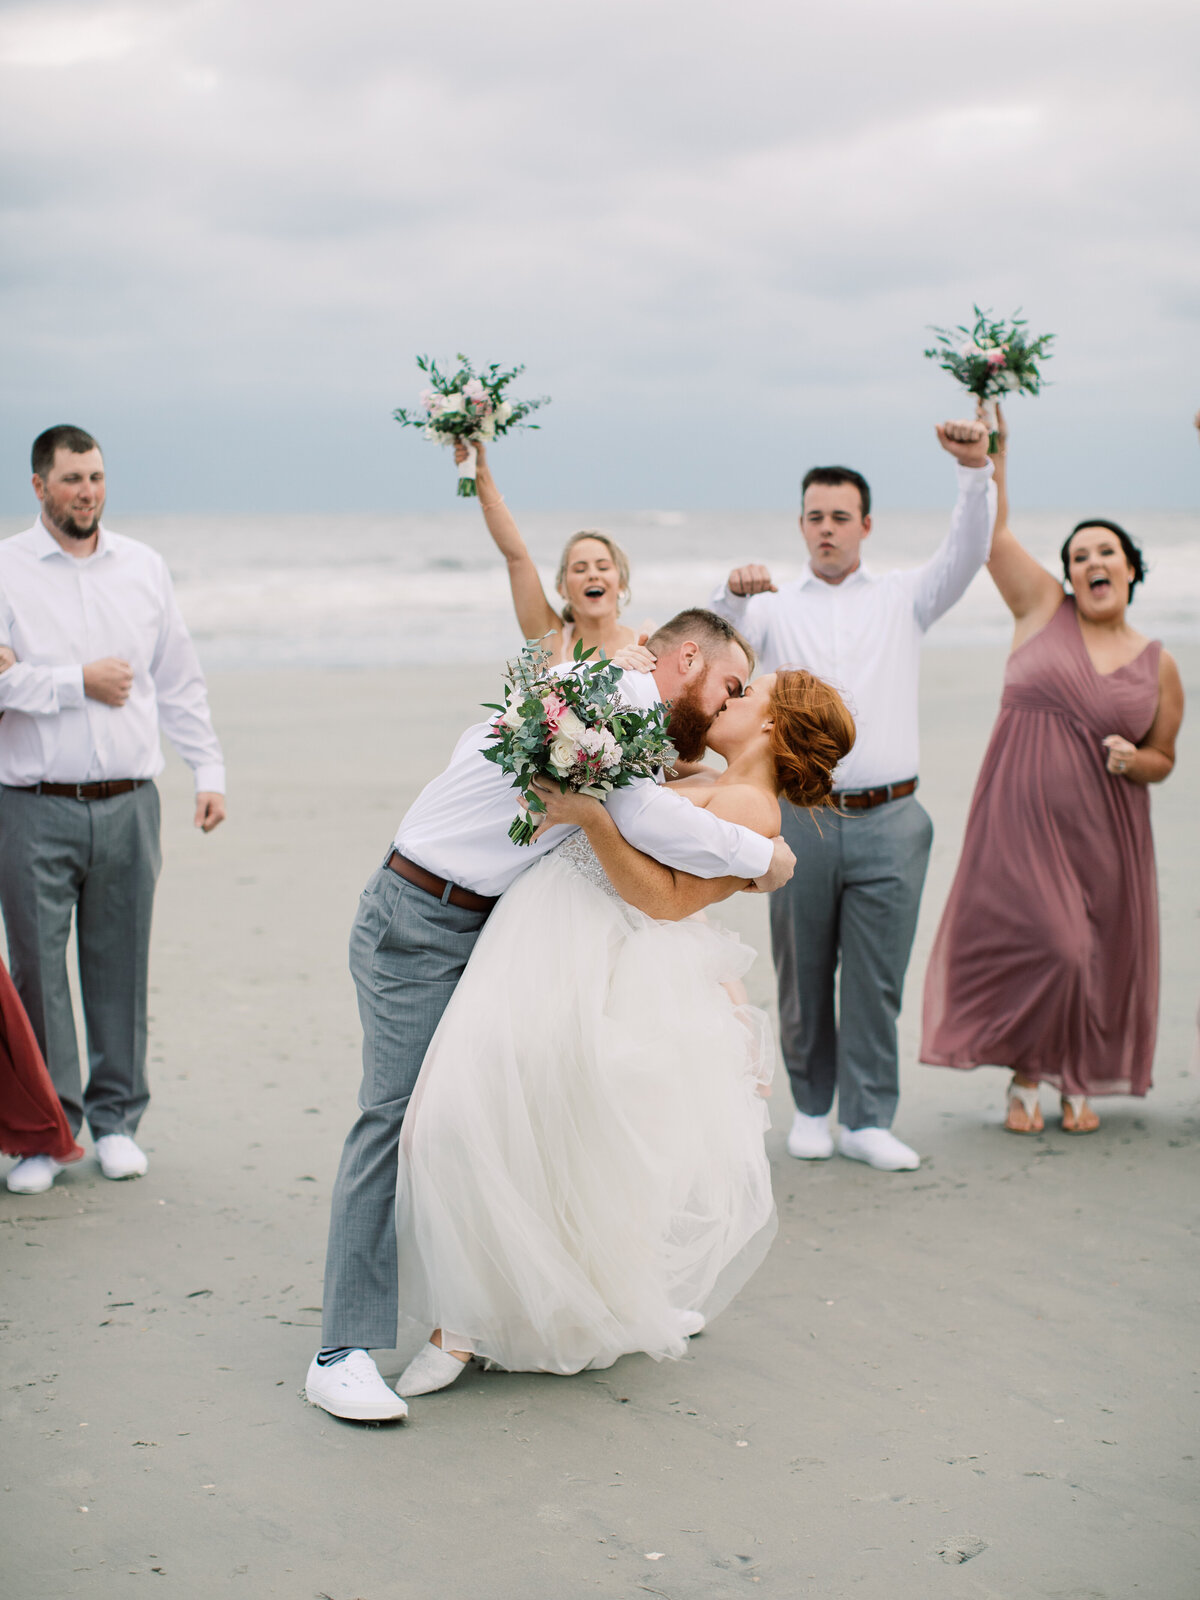 Charleston Wedding Photographer | Beaufort Wedding Photographer | Savannah Wedding Photographer | Santa Barbara Wedding Photographer | San Luis Obispo Wedding Photographer-22